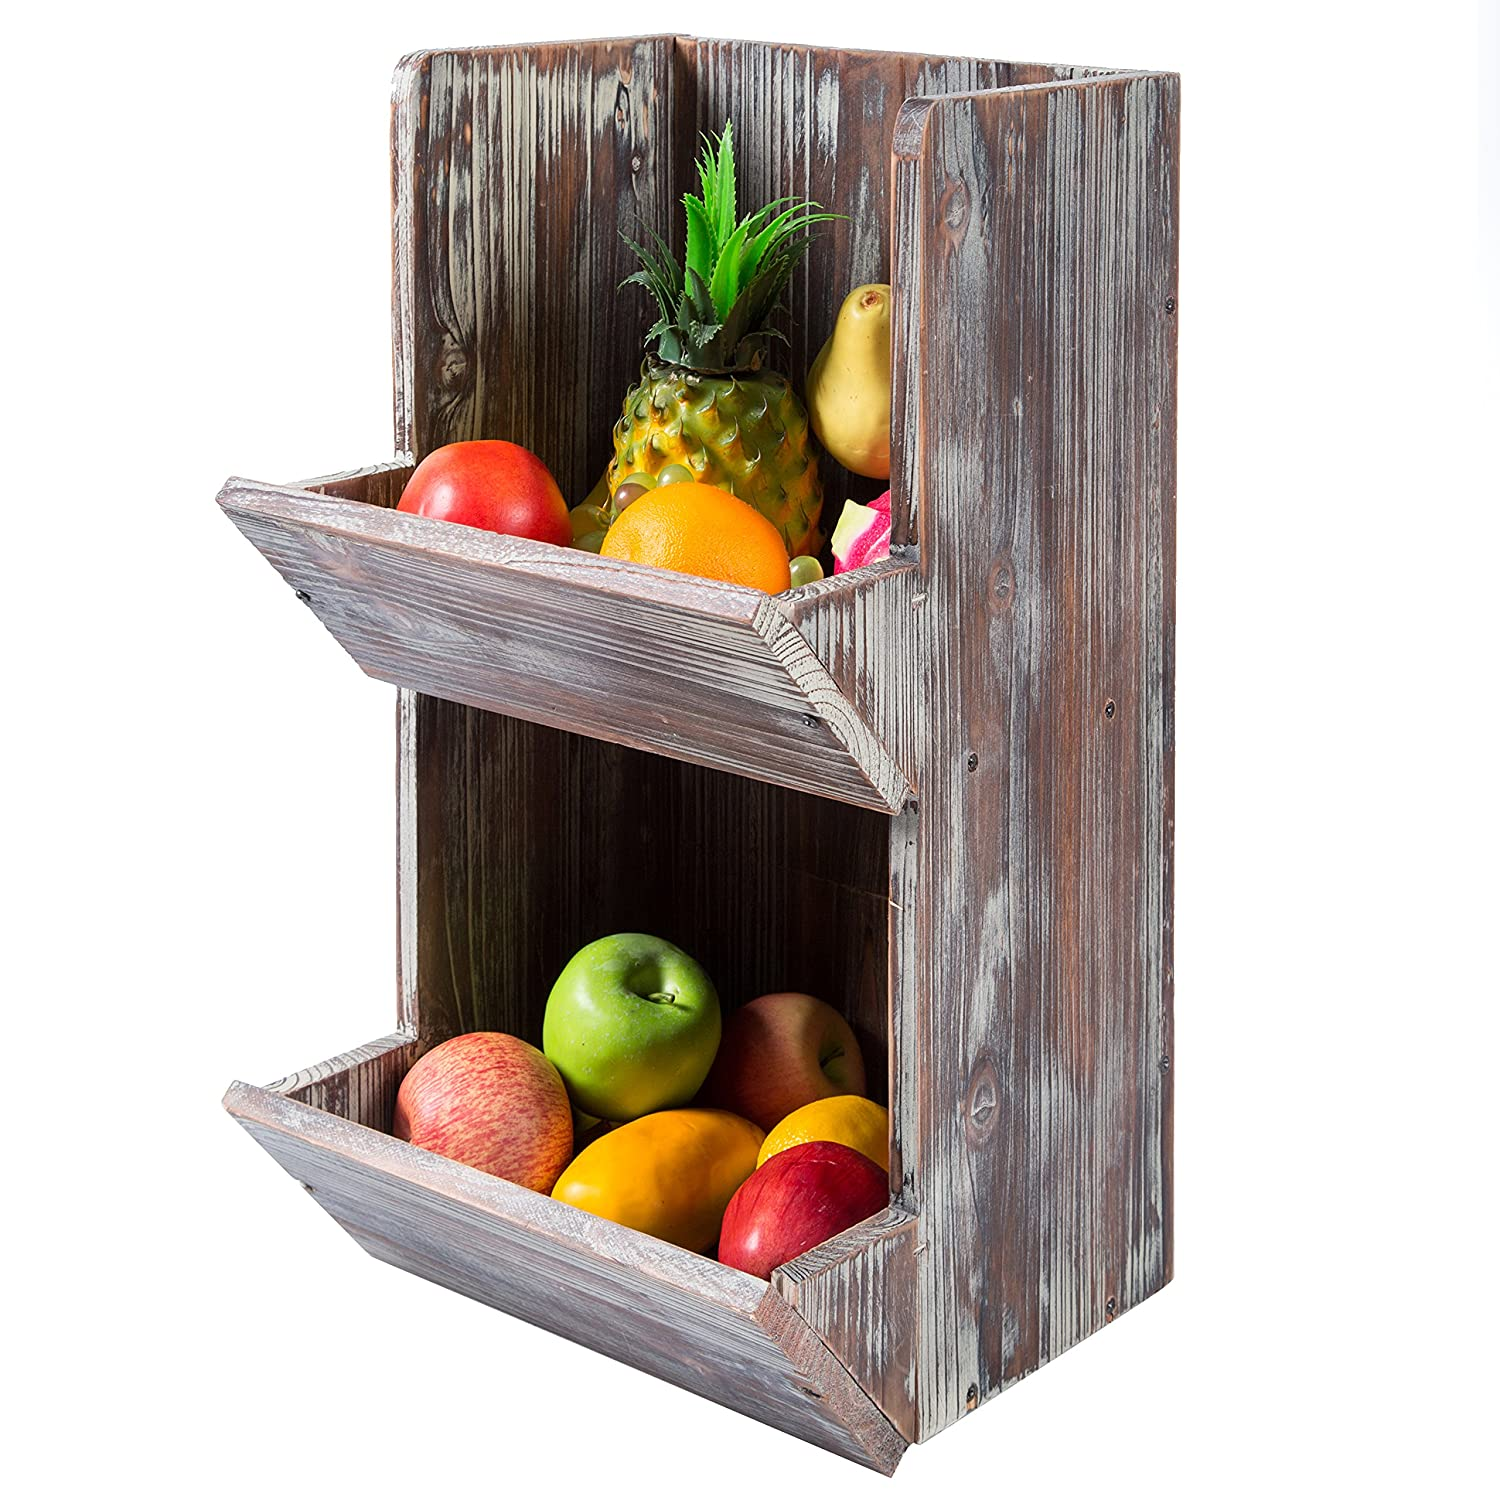 2 Tier Rustic Torched Wood Fruit Produce Storage Rack, Wall Mountable Display Bins MyGift SPOMHNK3542